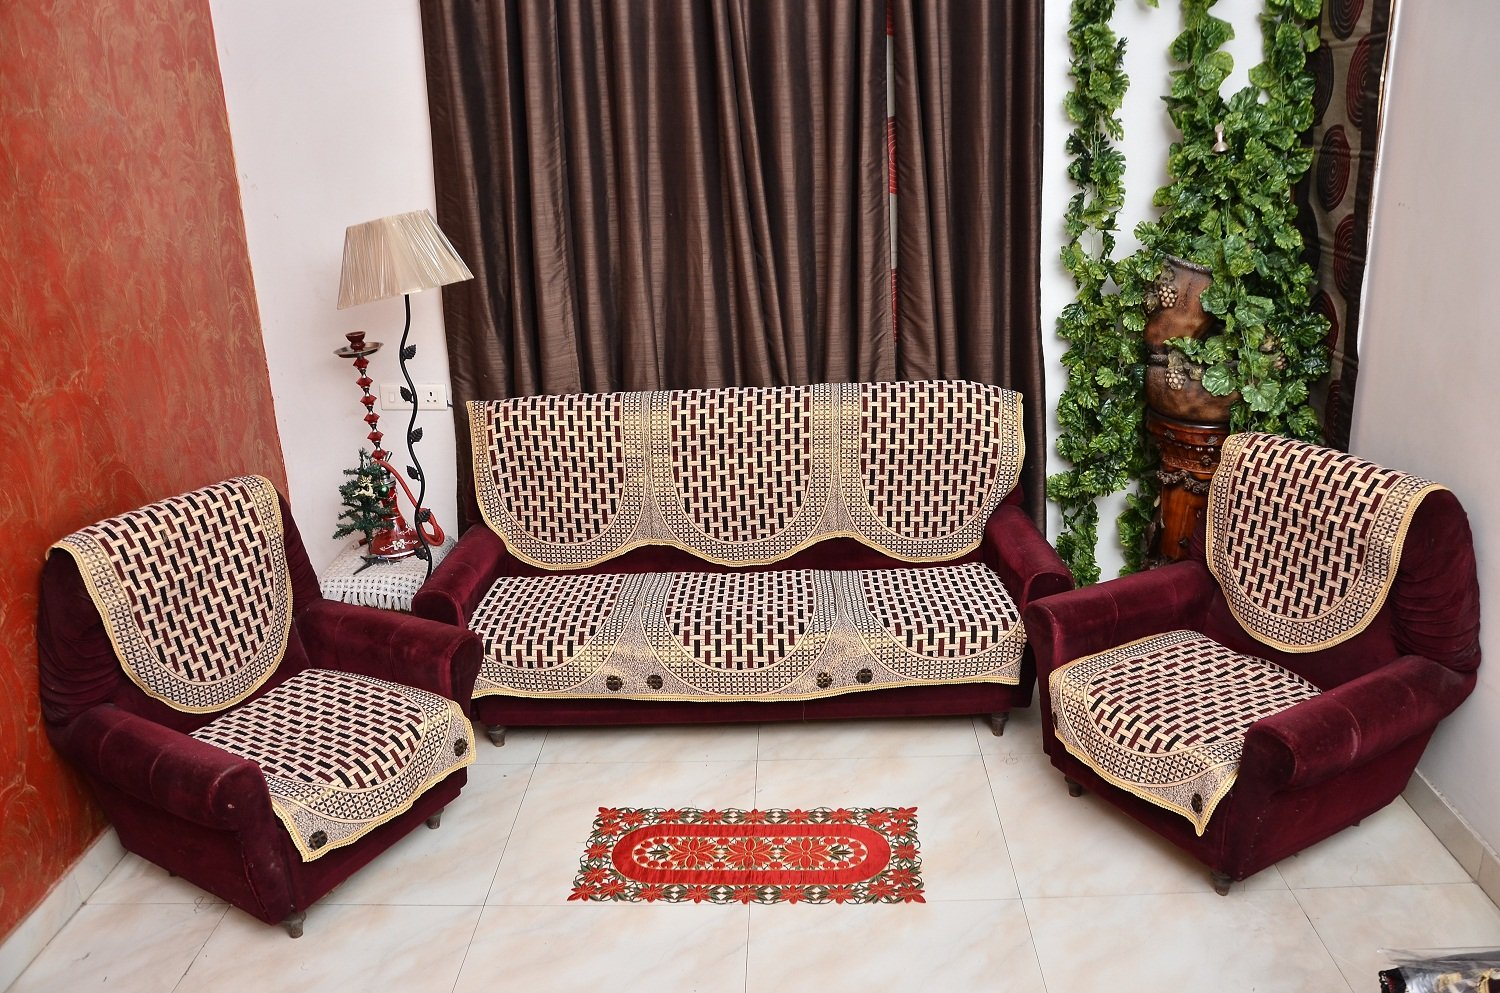 Buy Rshp 5 Seater Maroon Coffee Cotton Sofa Cover line at Low